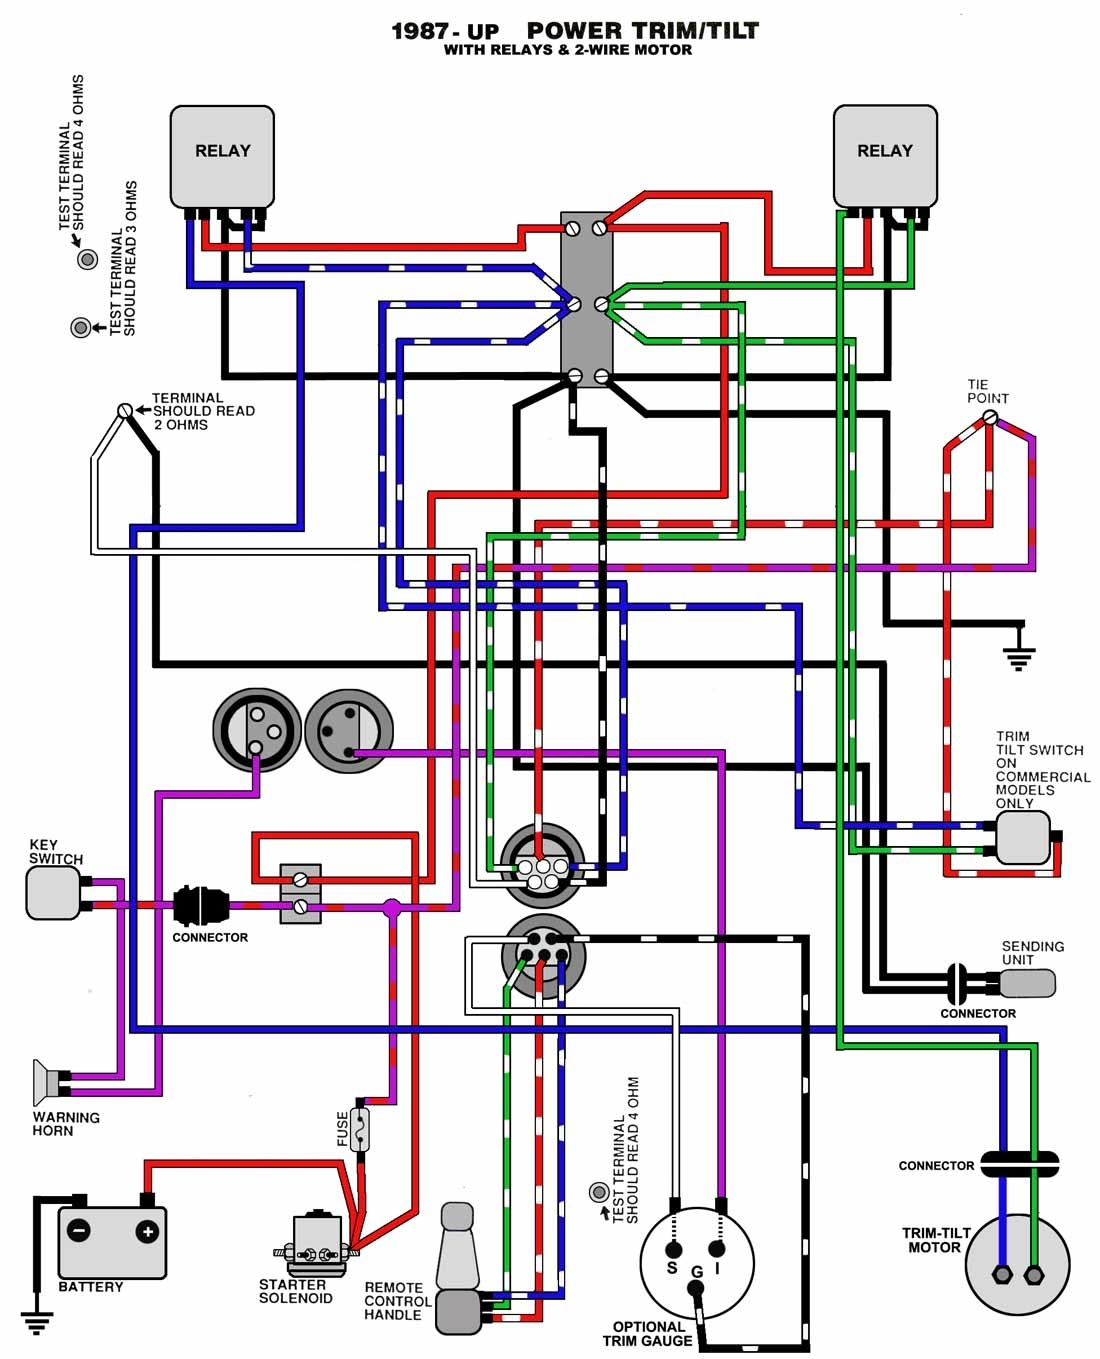 evinrude key switch wiring diagram how to design uml diagrams mastertech marine johnson outboard